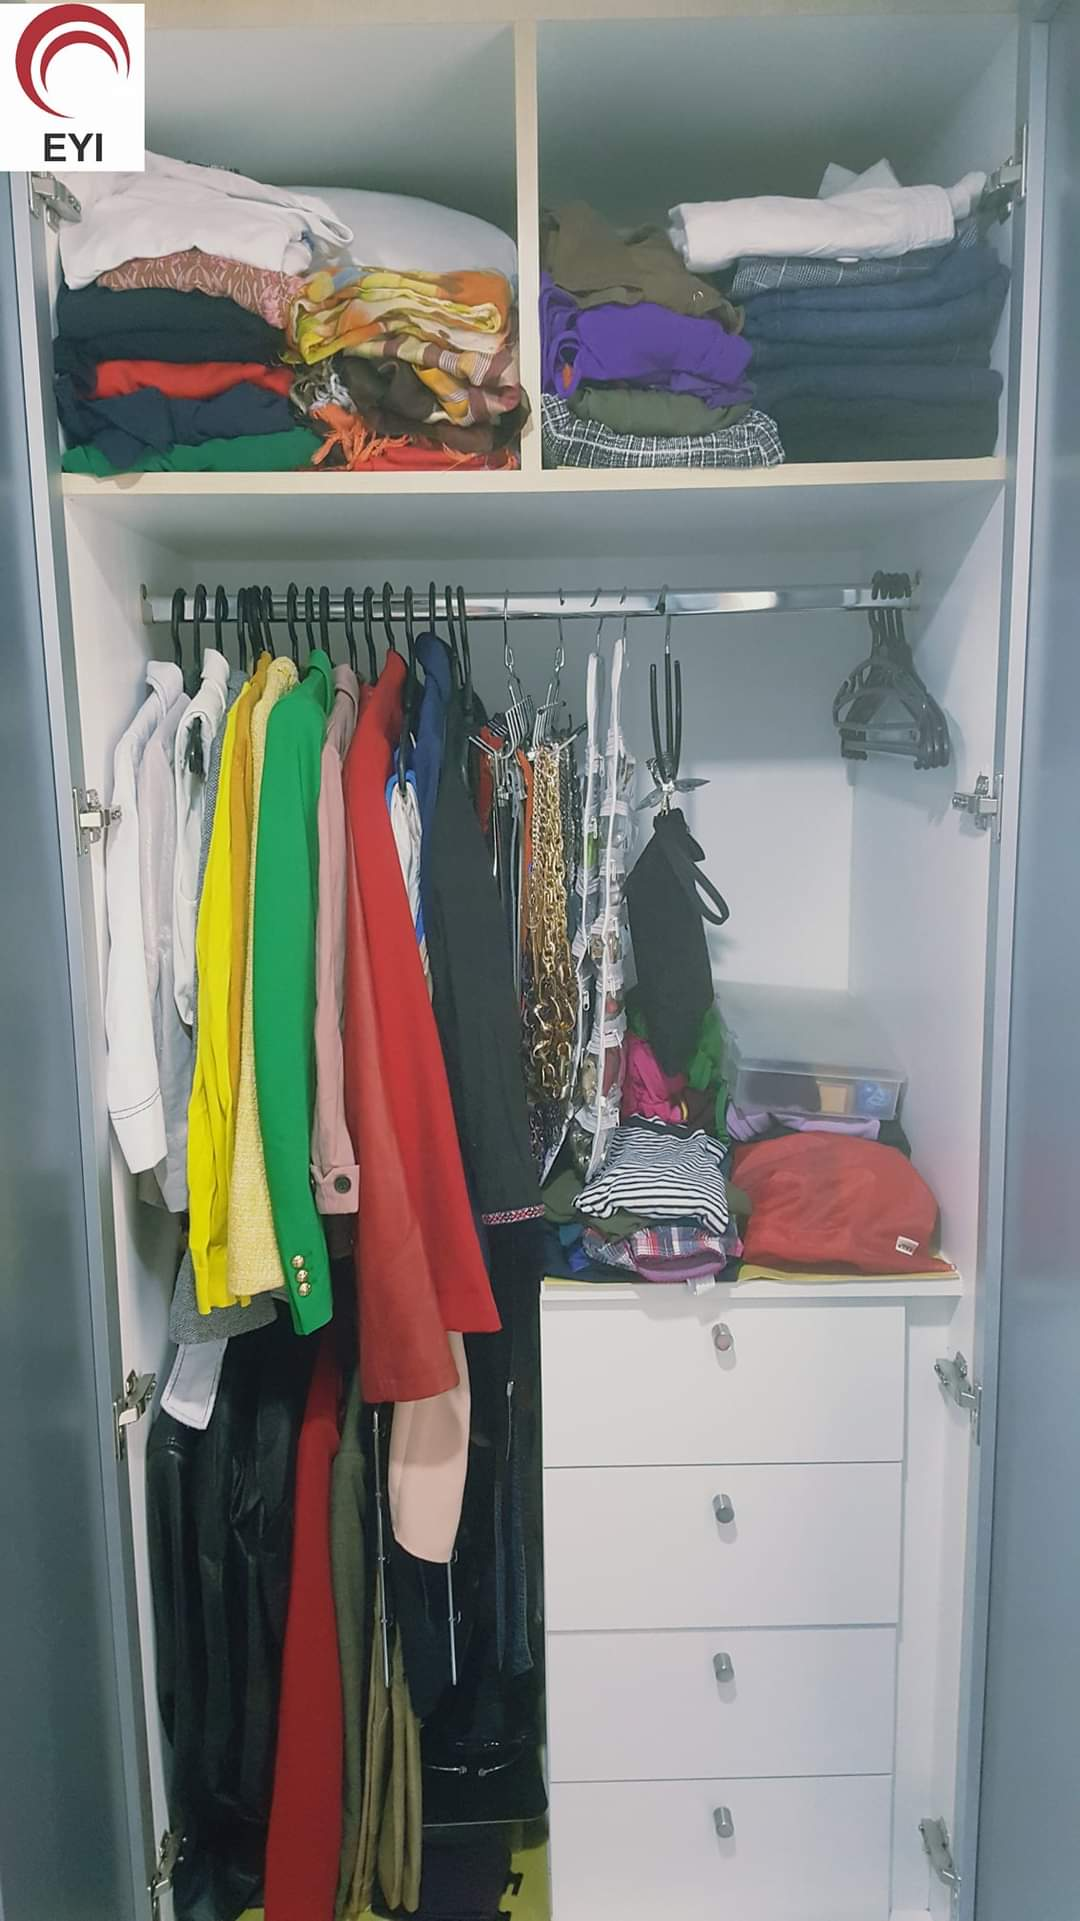 From Walk-In Closet to Compact